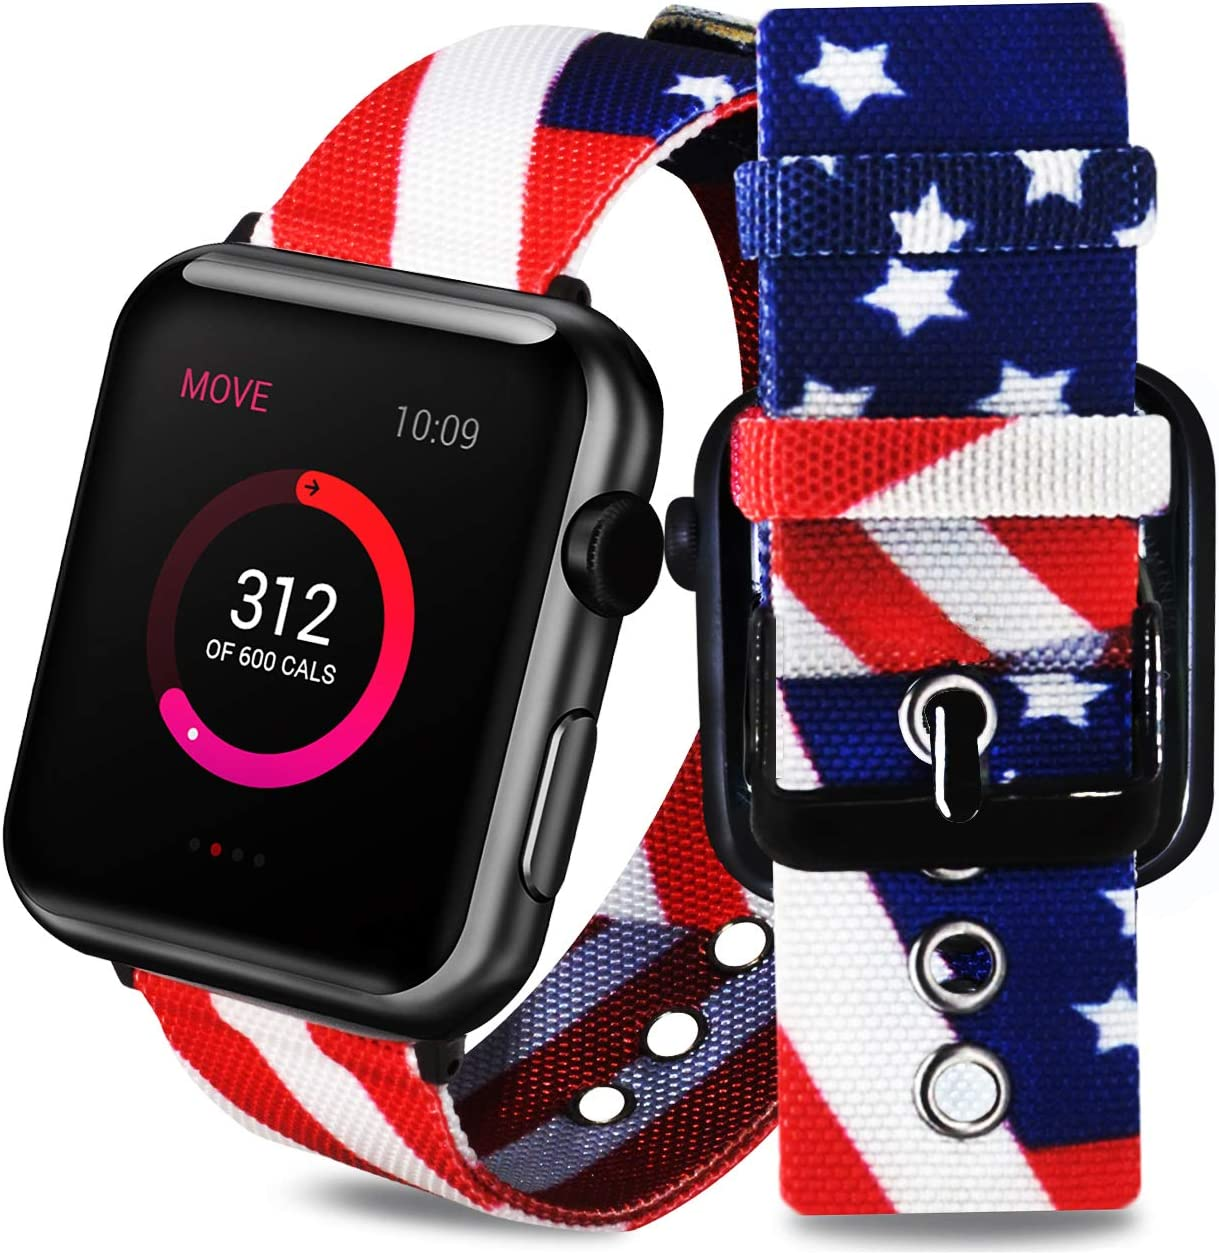 ONELANKS Comfortable Nylon Straps for Apple Watch American Flag Wristband Replacement Band Compatible for iWatch Series 5/4 (44mm) Series 3/2/1 (42mm)